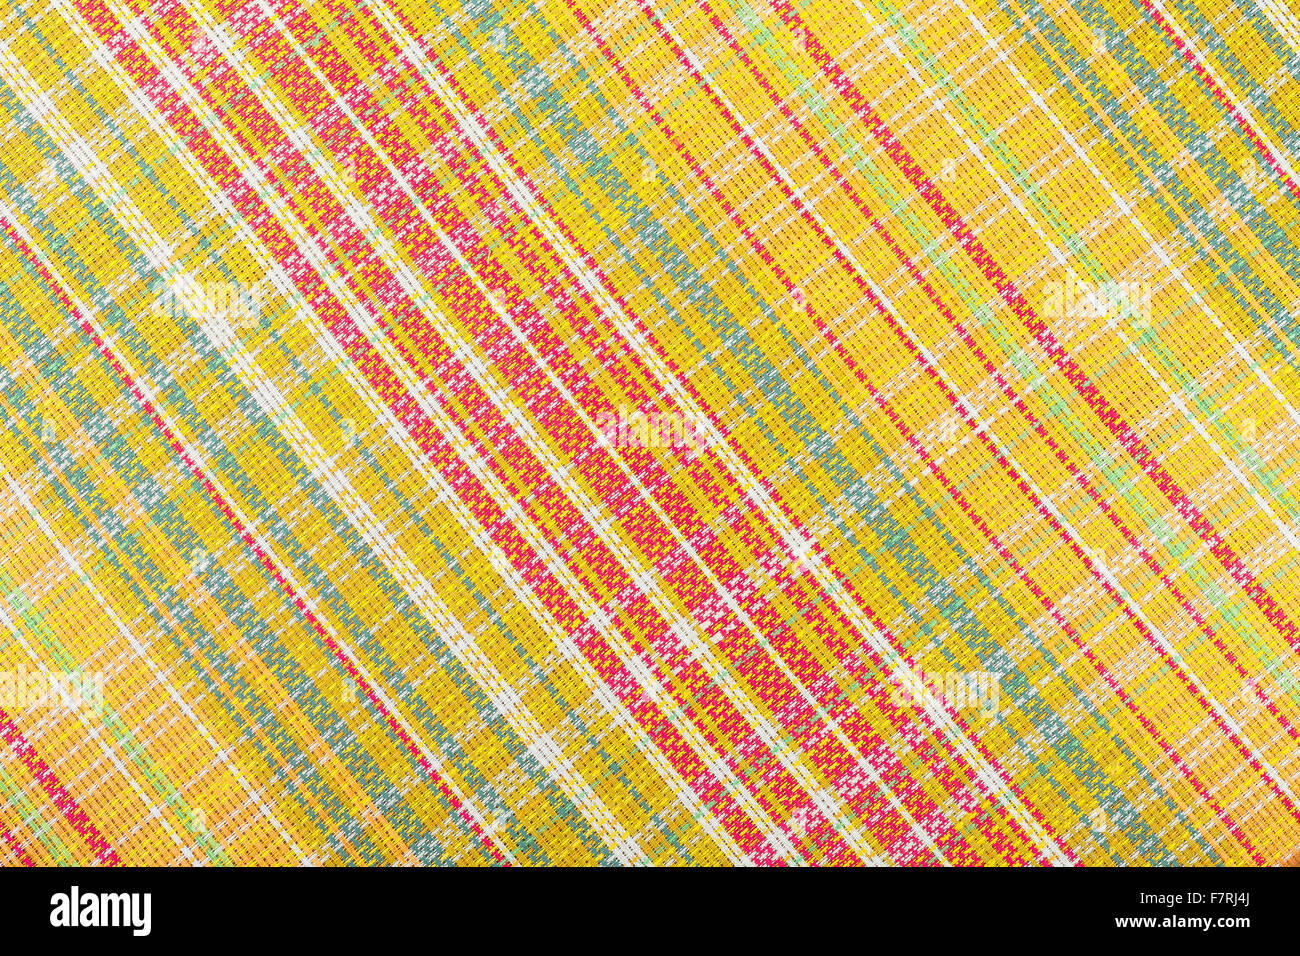 Fabric in check pattern texture or background Stock Photo